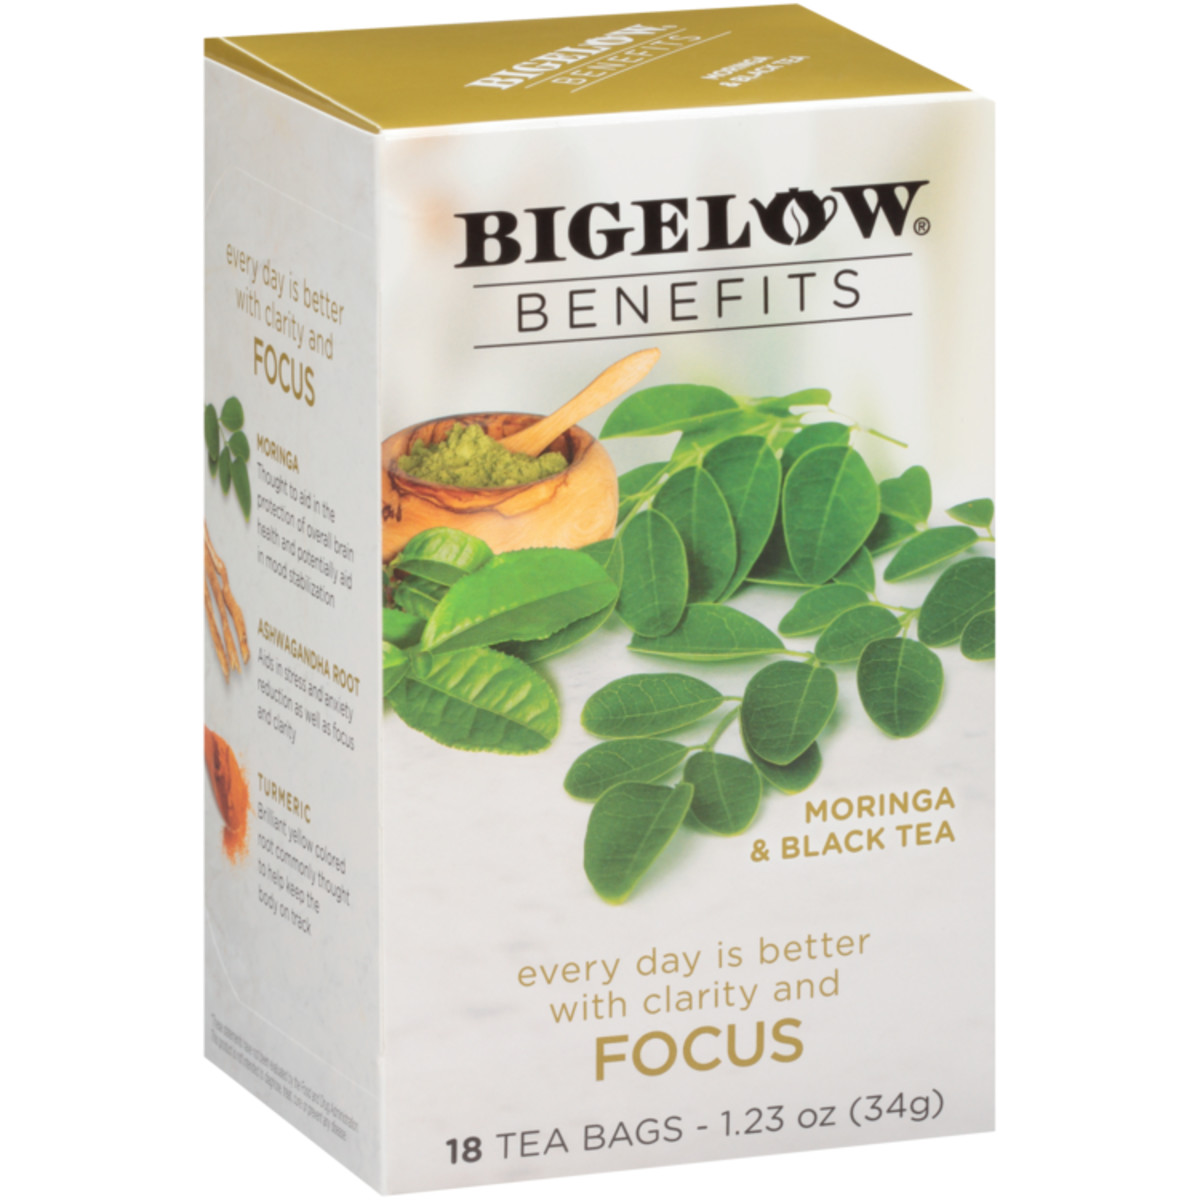 Bigelow Benefits Moringa and Black Tea - Case of 6 boxes - total of 108 teabags